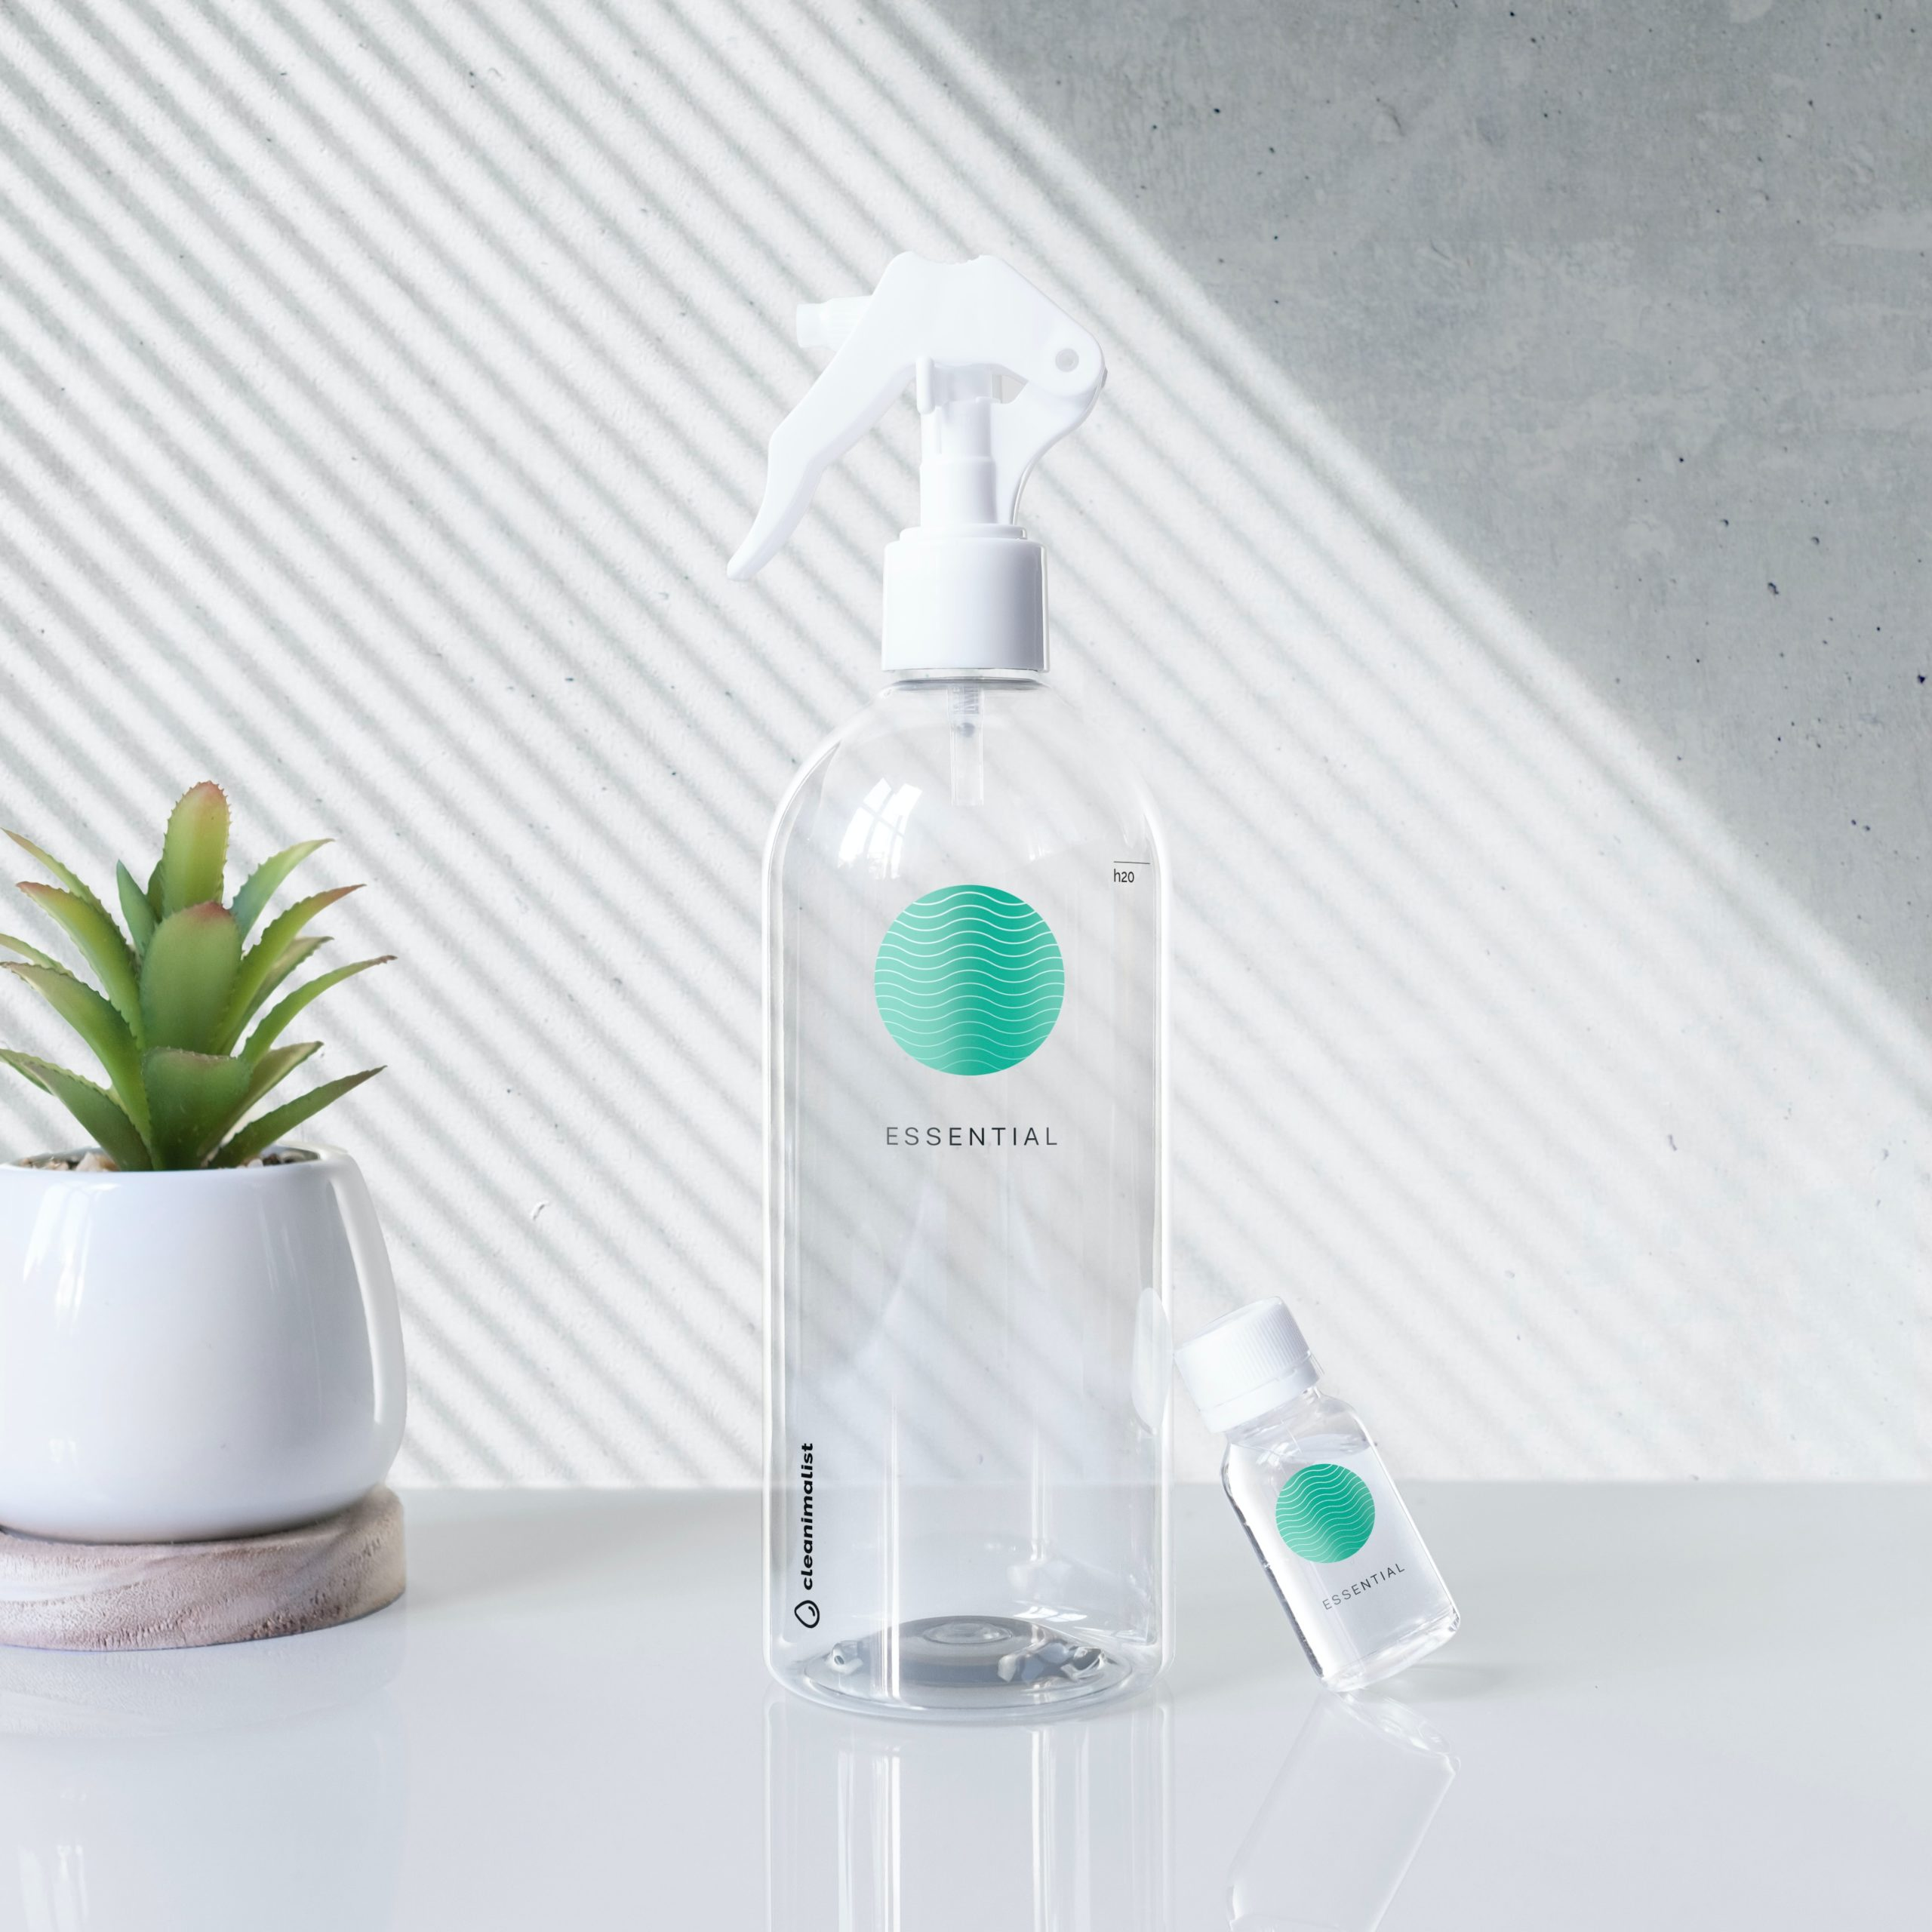 bottle of a better cleaning solution for removing mold and cleaning glass